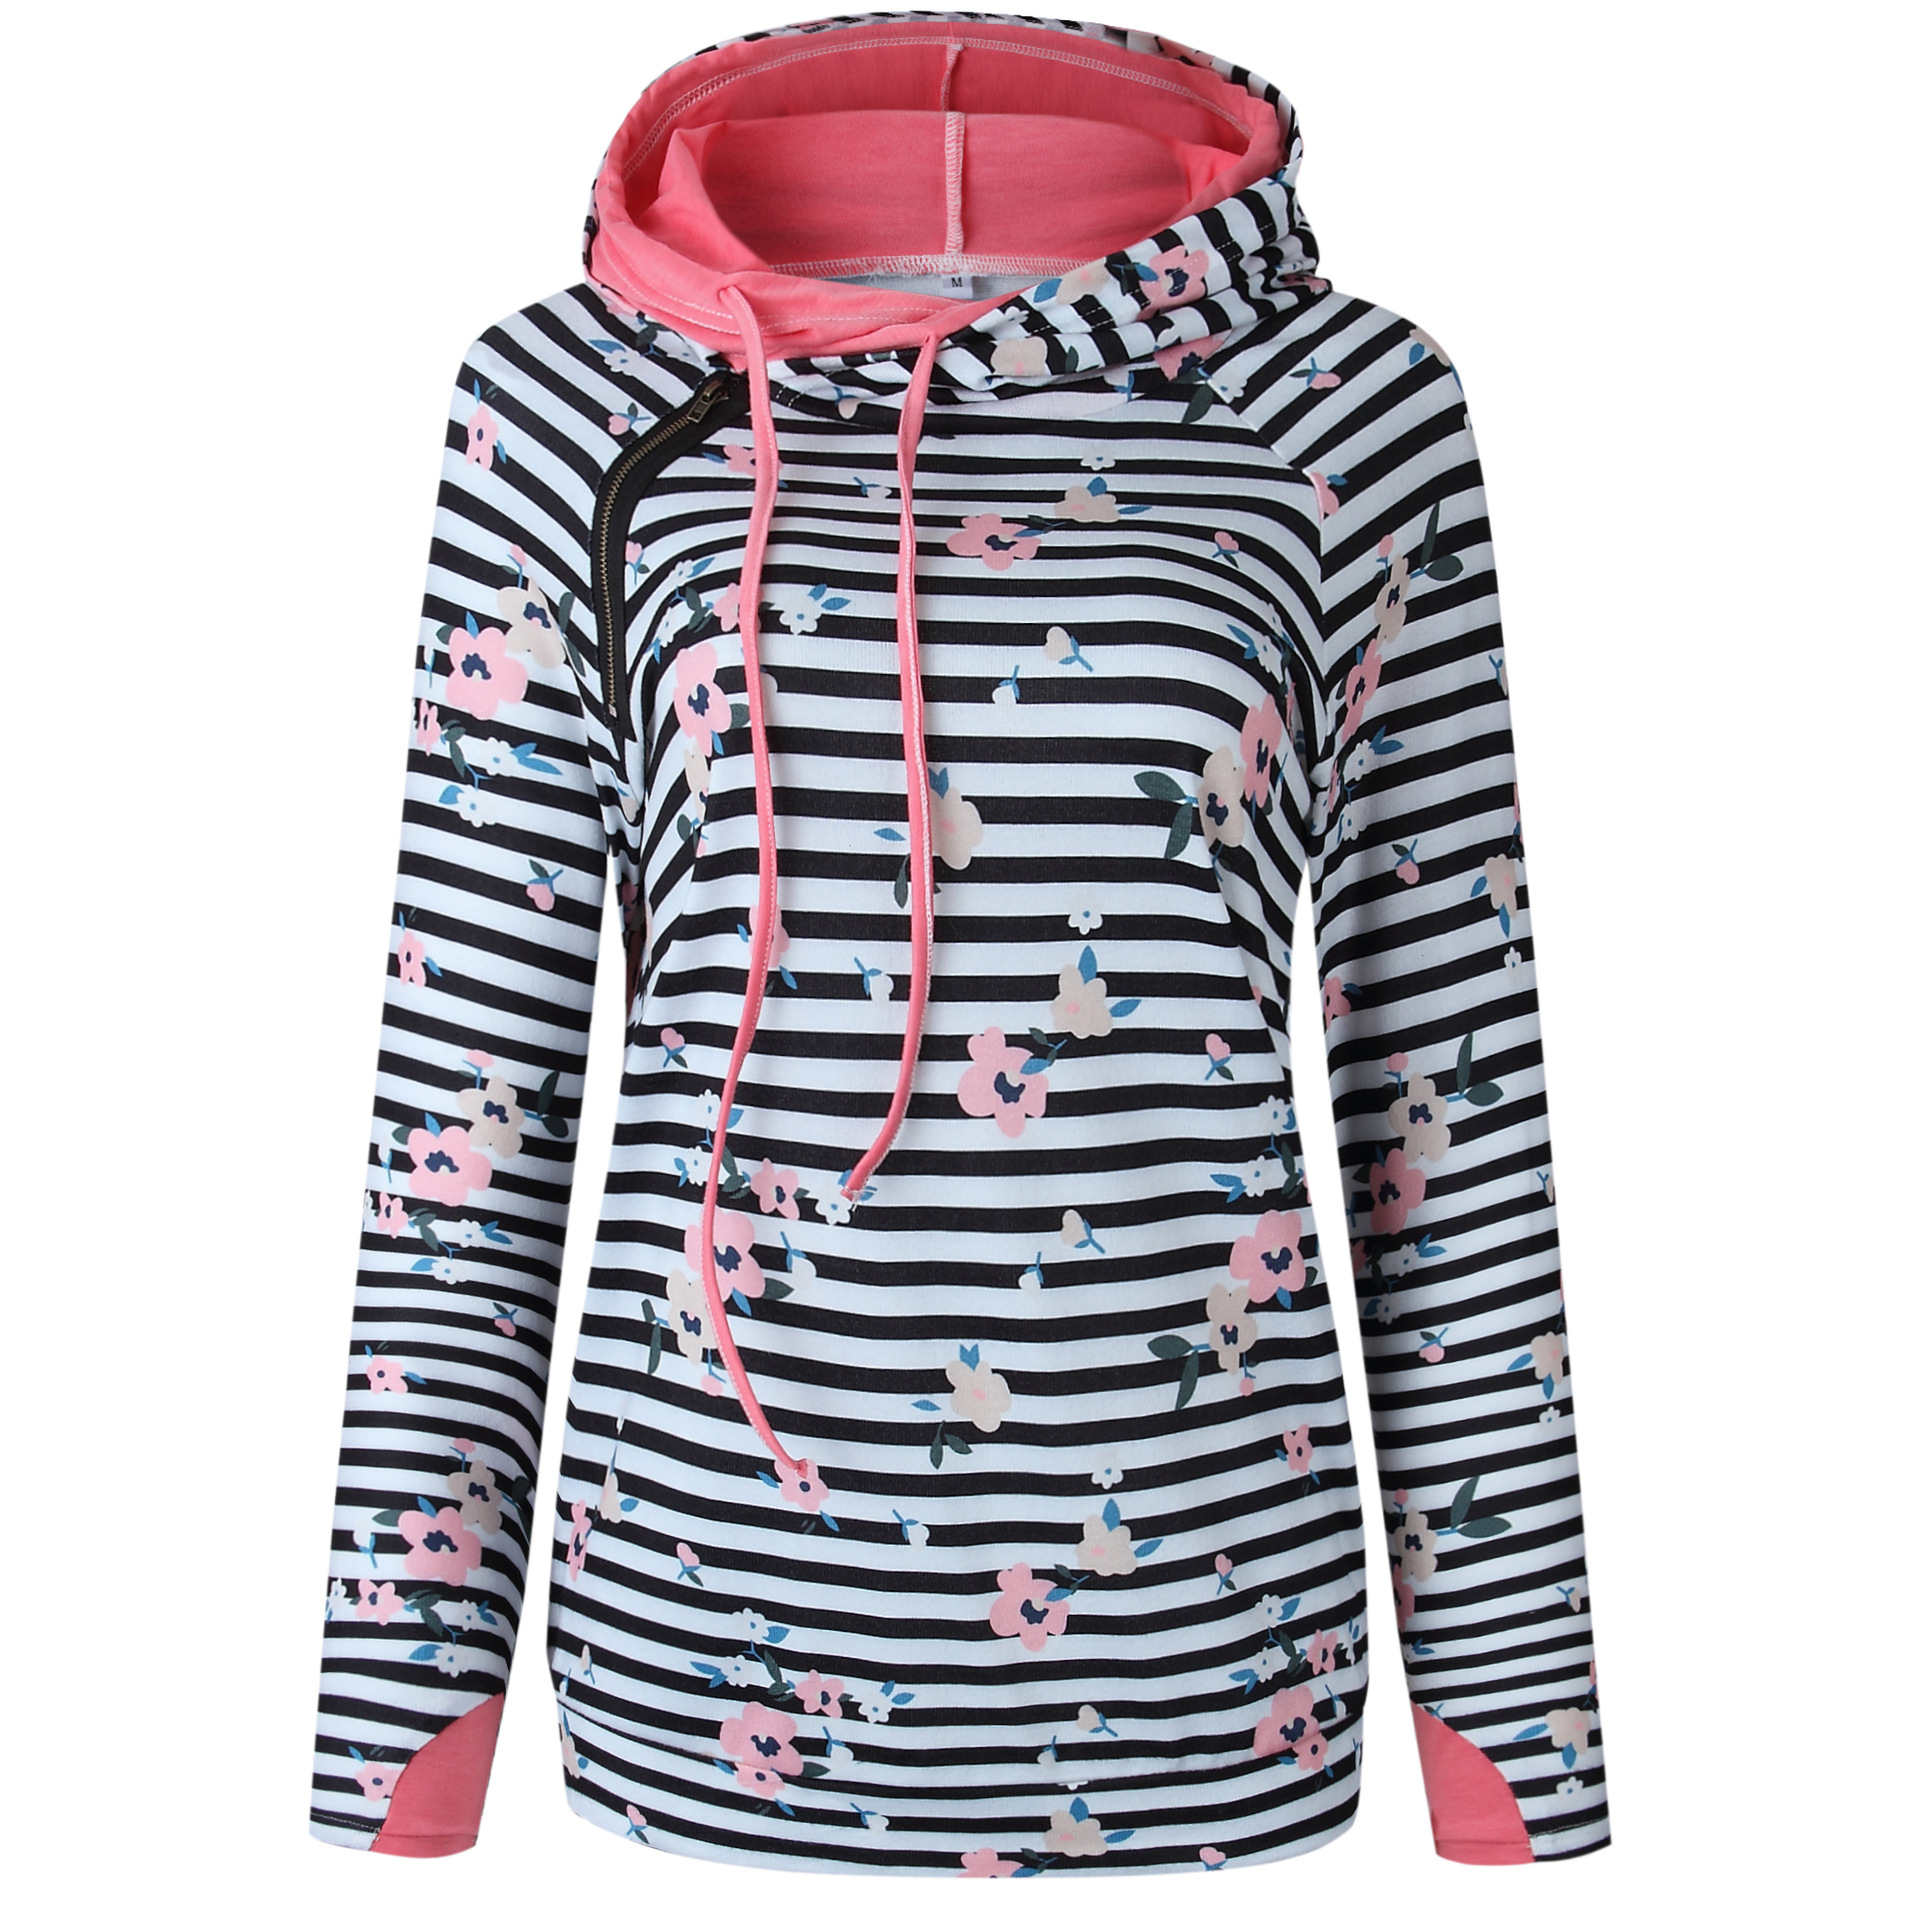 women sweatshirts striped hooded floral print top 2019 winter fashion pullover casual tops women sweatshirt pink hoodies gothic in Hoodies amp Sweatshirts from Women 39 s Clothing